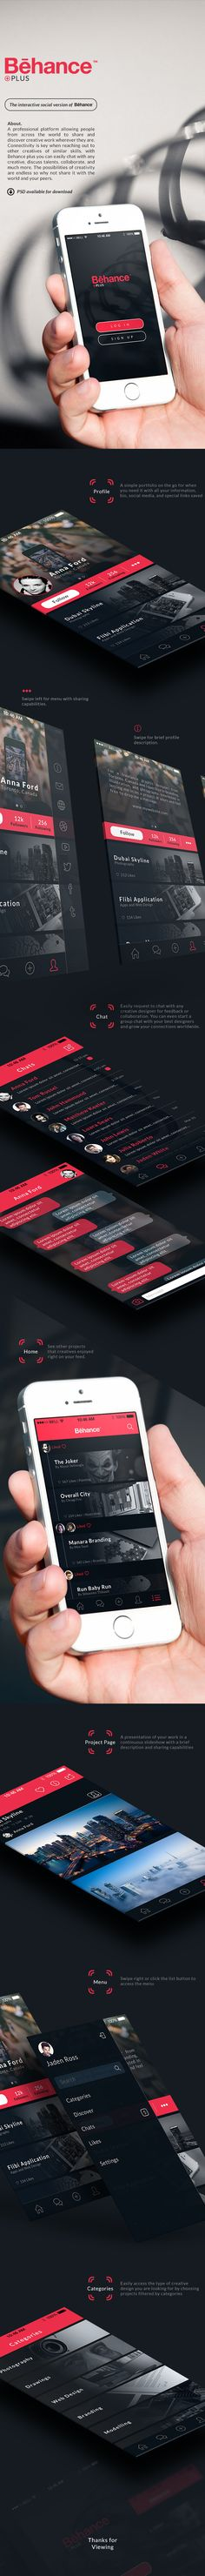 Mobile App Design Inspiration – Behance Plus